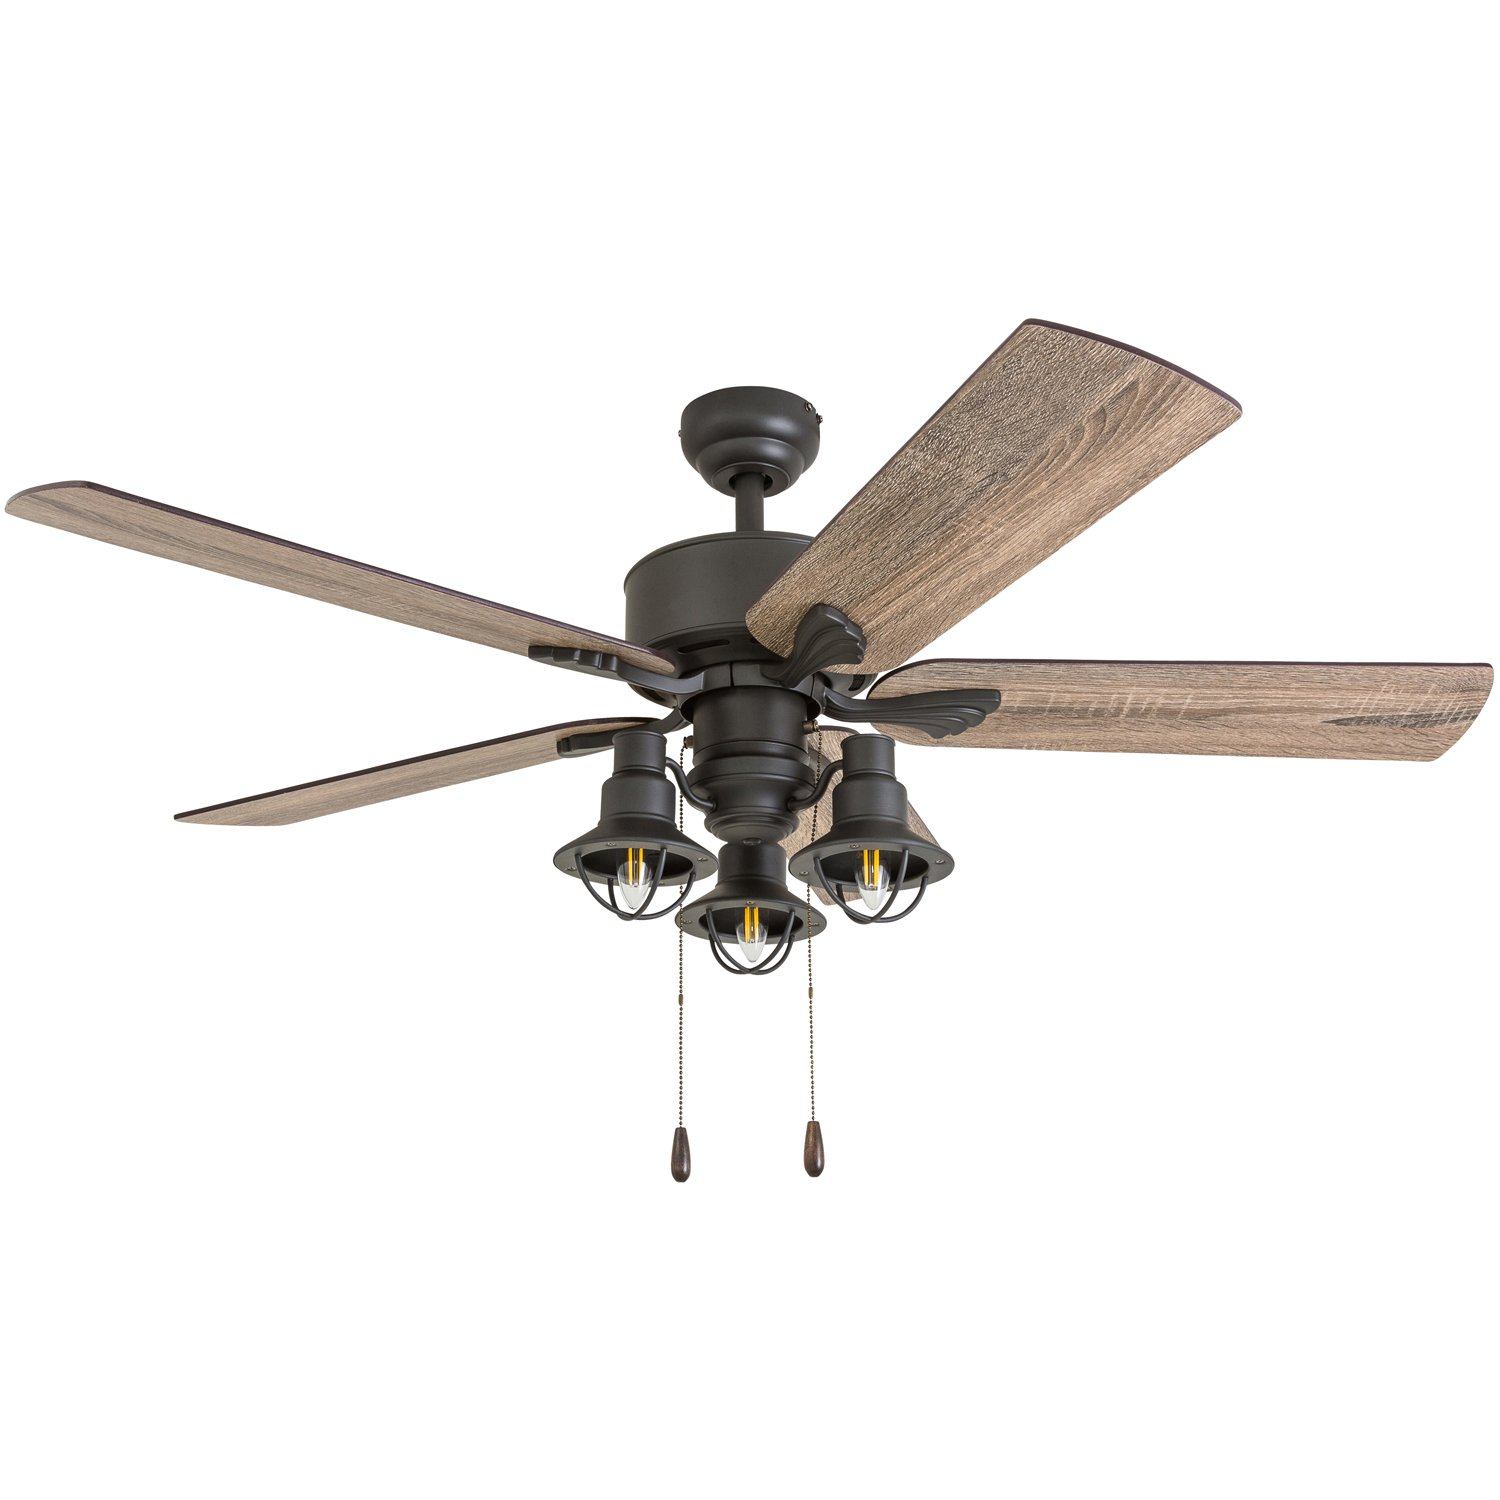 Prominence Home 50651 01 Sivan Farmhouse Ceiling Fan 52 Barnwood Crest Wiring Diagram Tumbleweed Aged Bronze